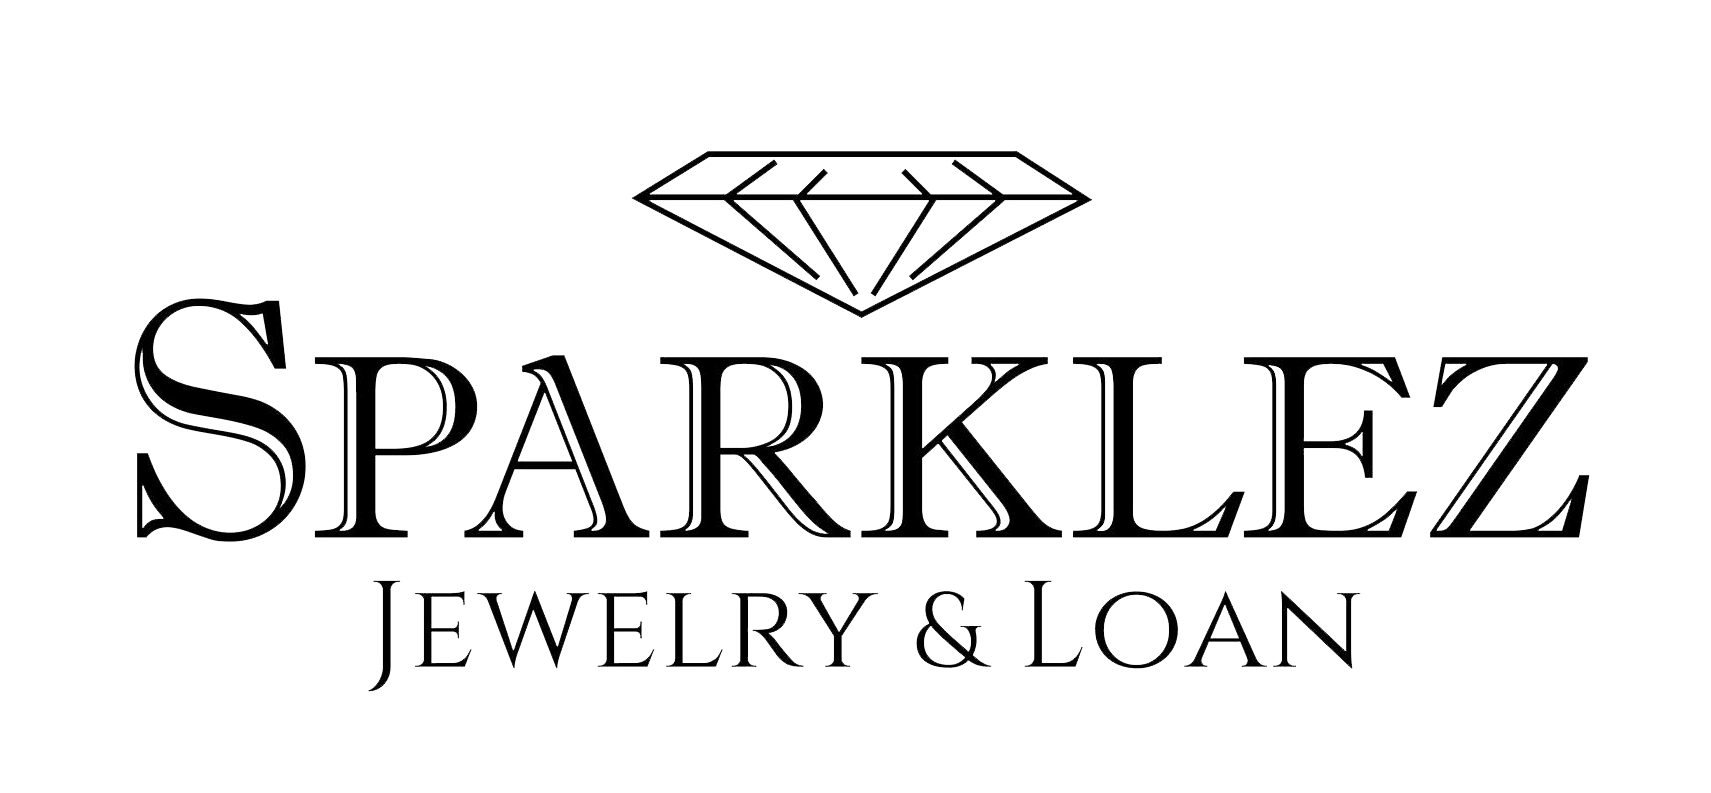 SPARKLEZ JEWELRY AND LOAN